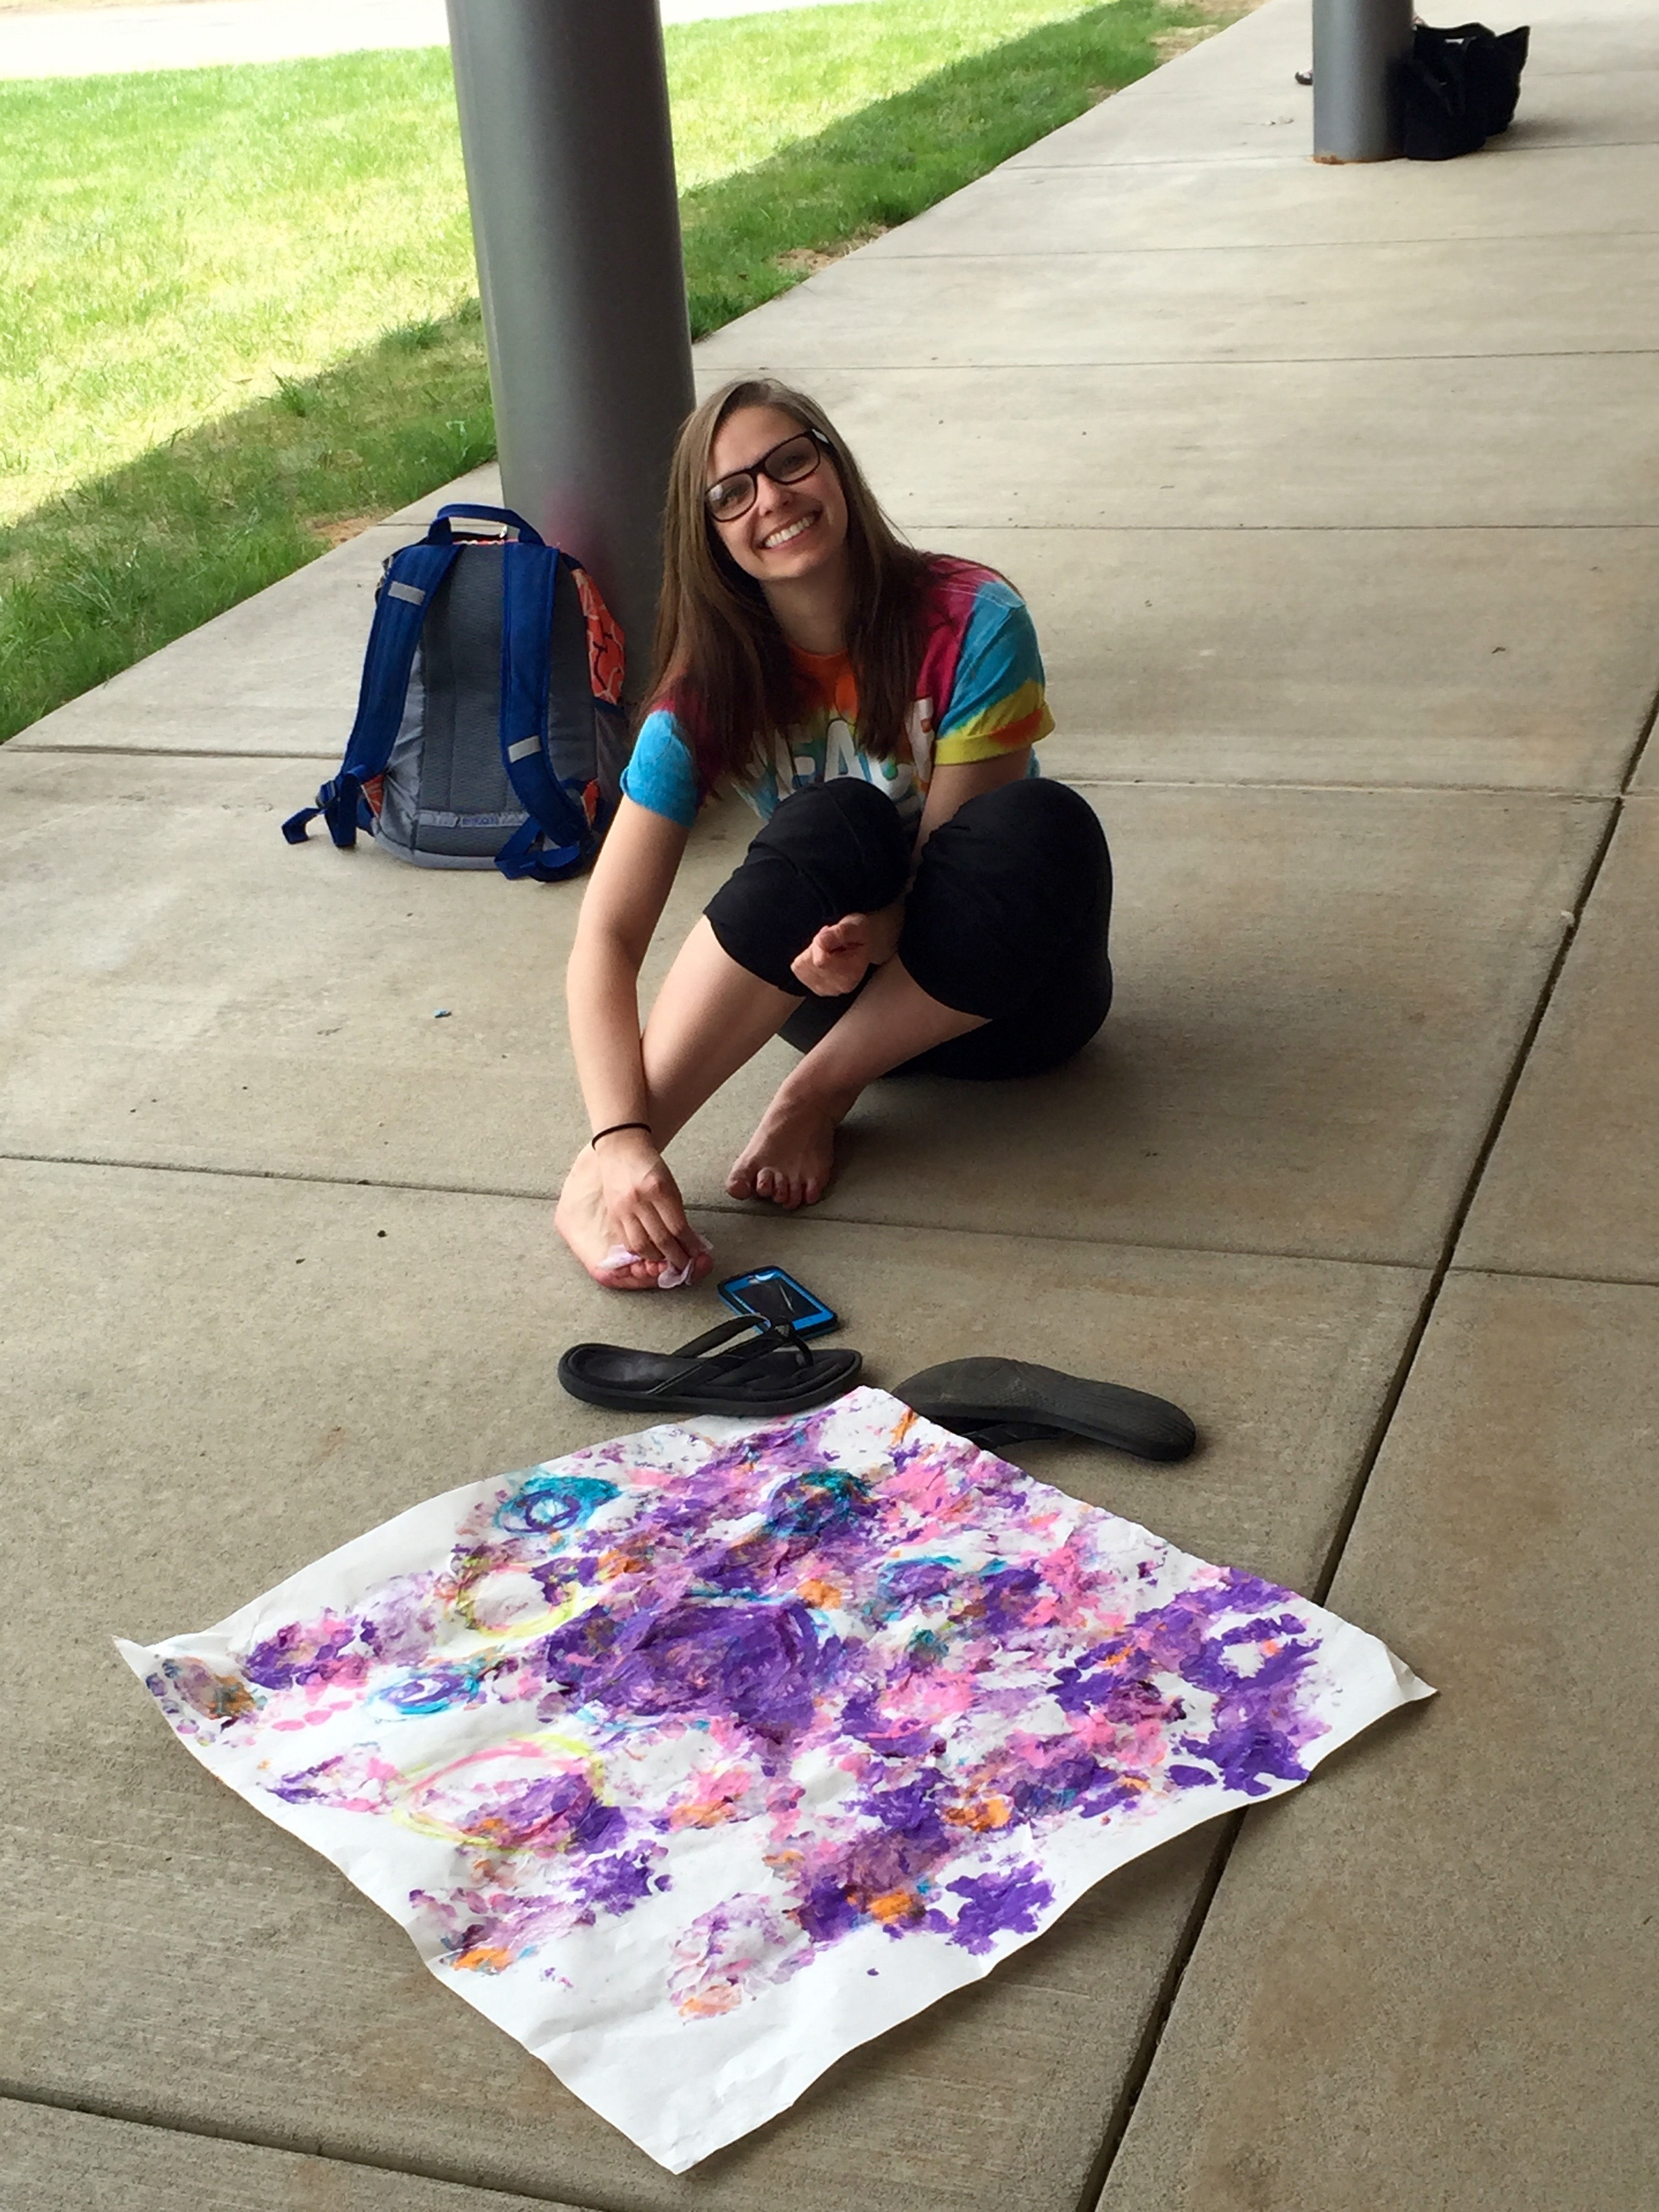 Dana Simpson used her feet to create her awesome piece of art!